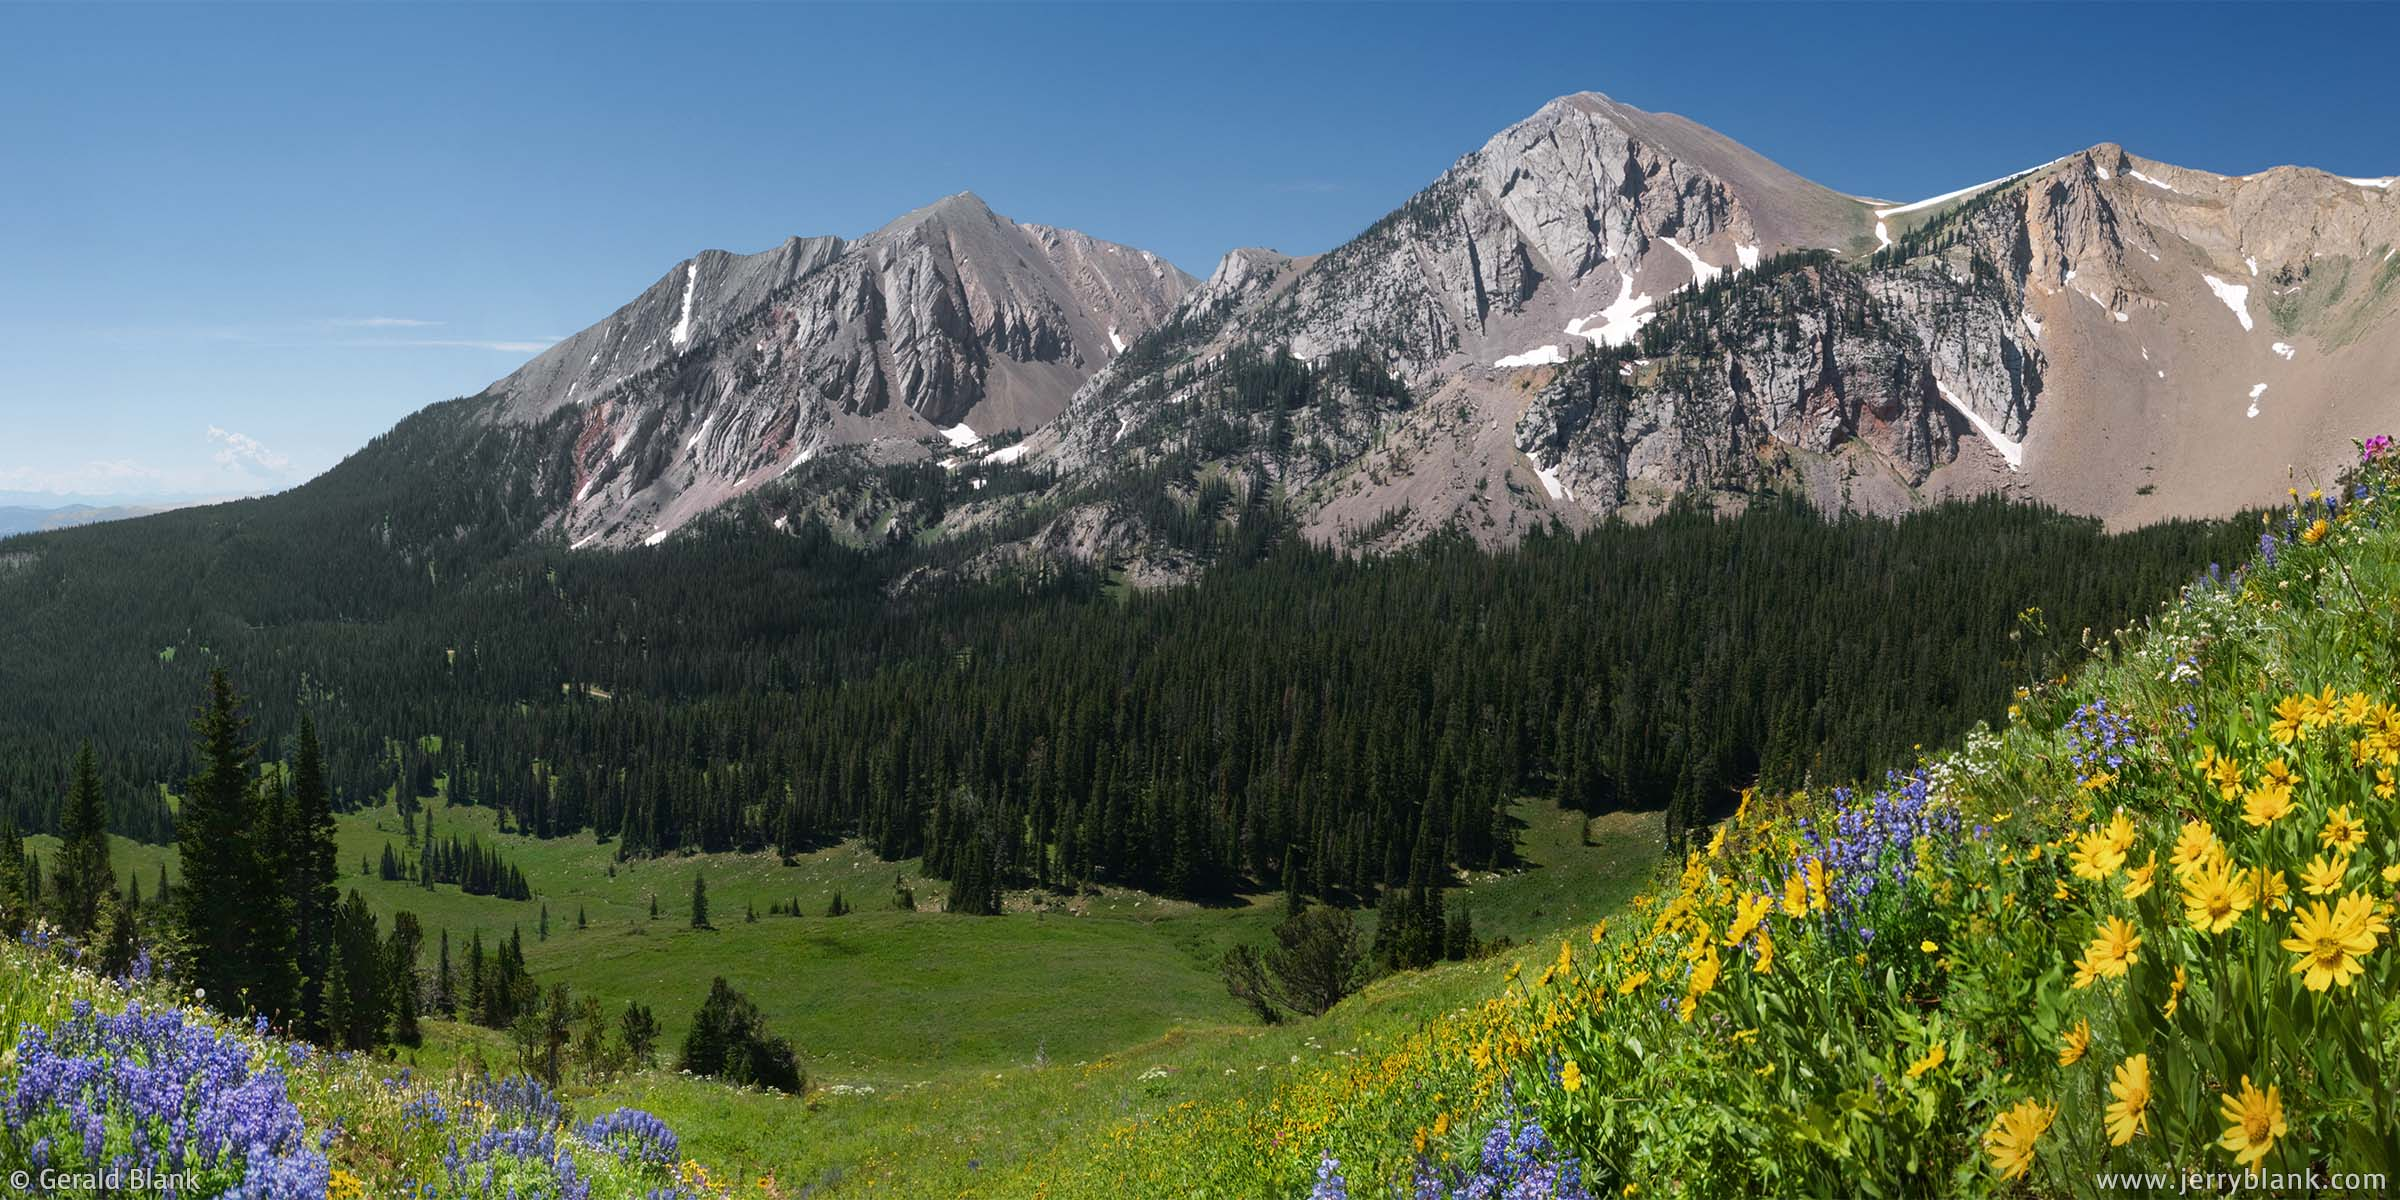 #09404 - Lupines and arnica cover a meadow northeast of Sacagawea Peak and Hardscrabble Peak in Montana's Bridger Mountains - wildflowers panoramic photo by Jerry Blank